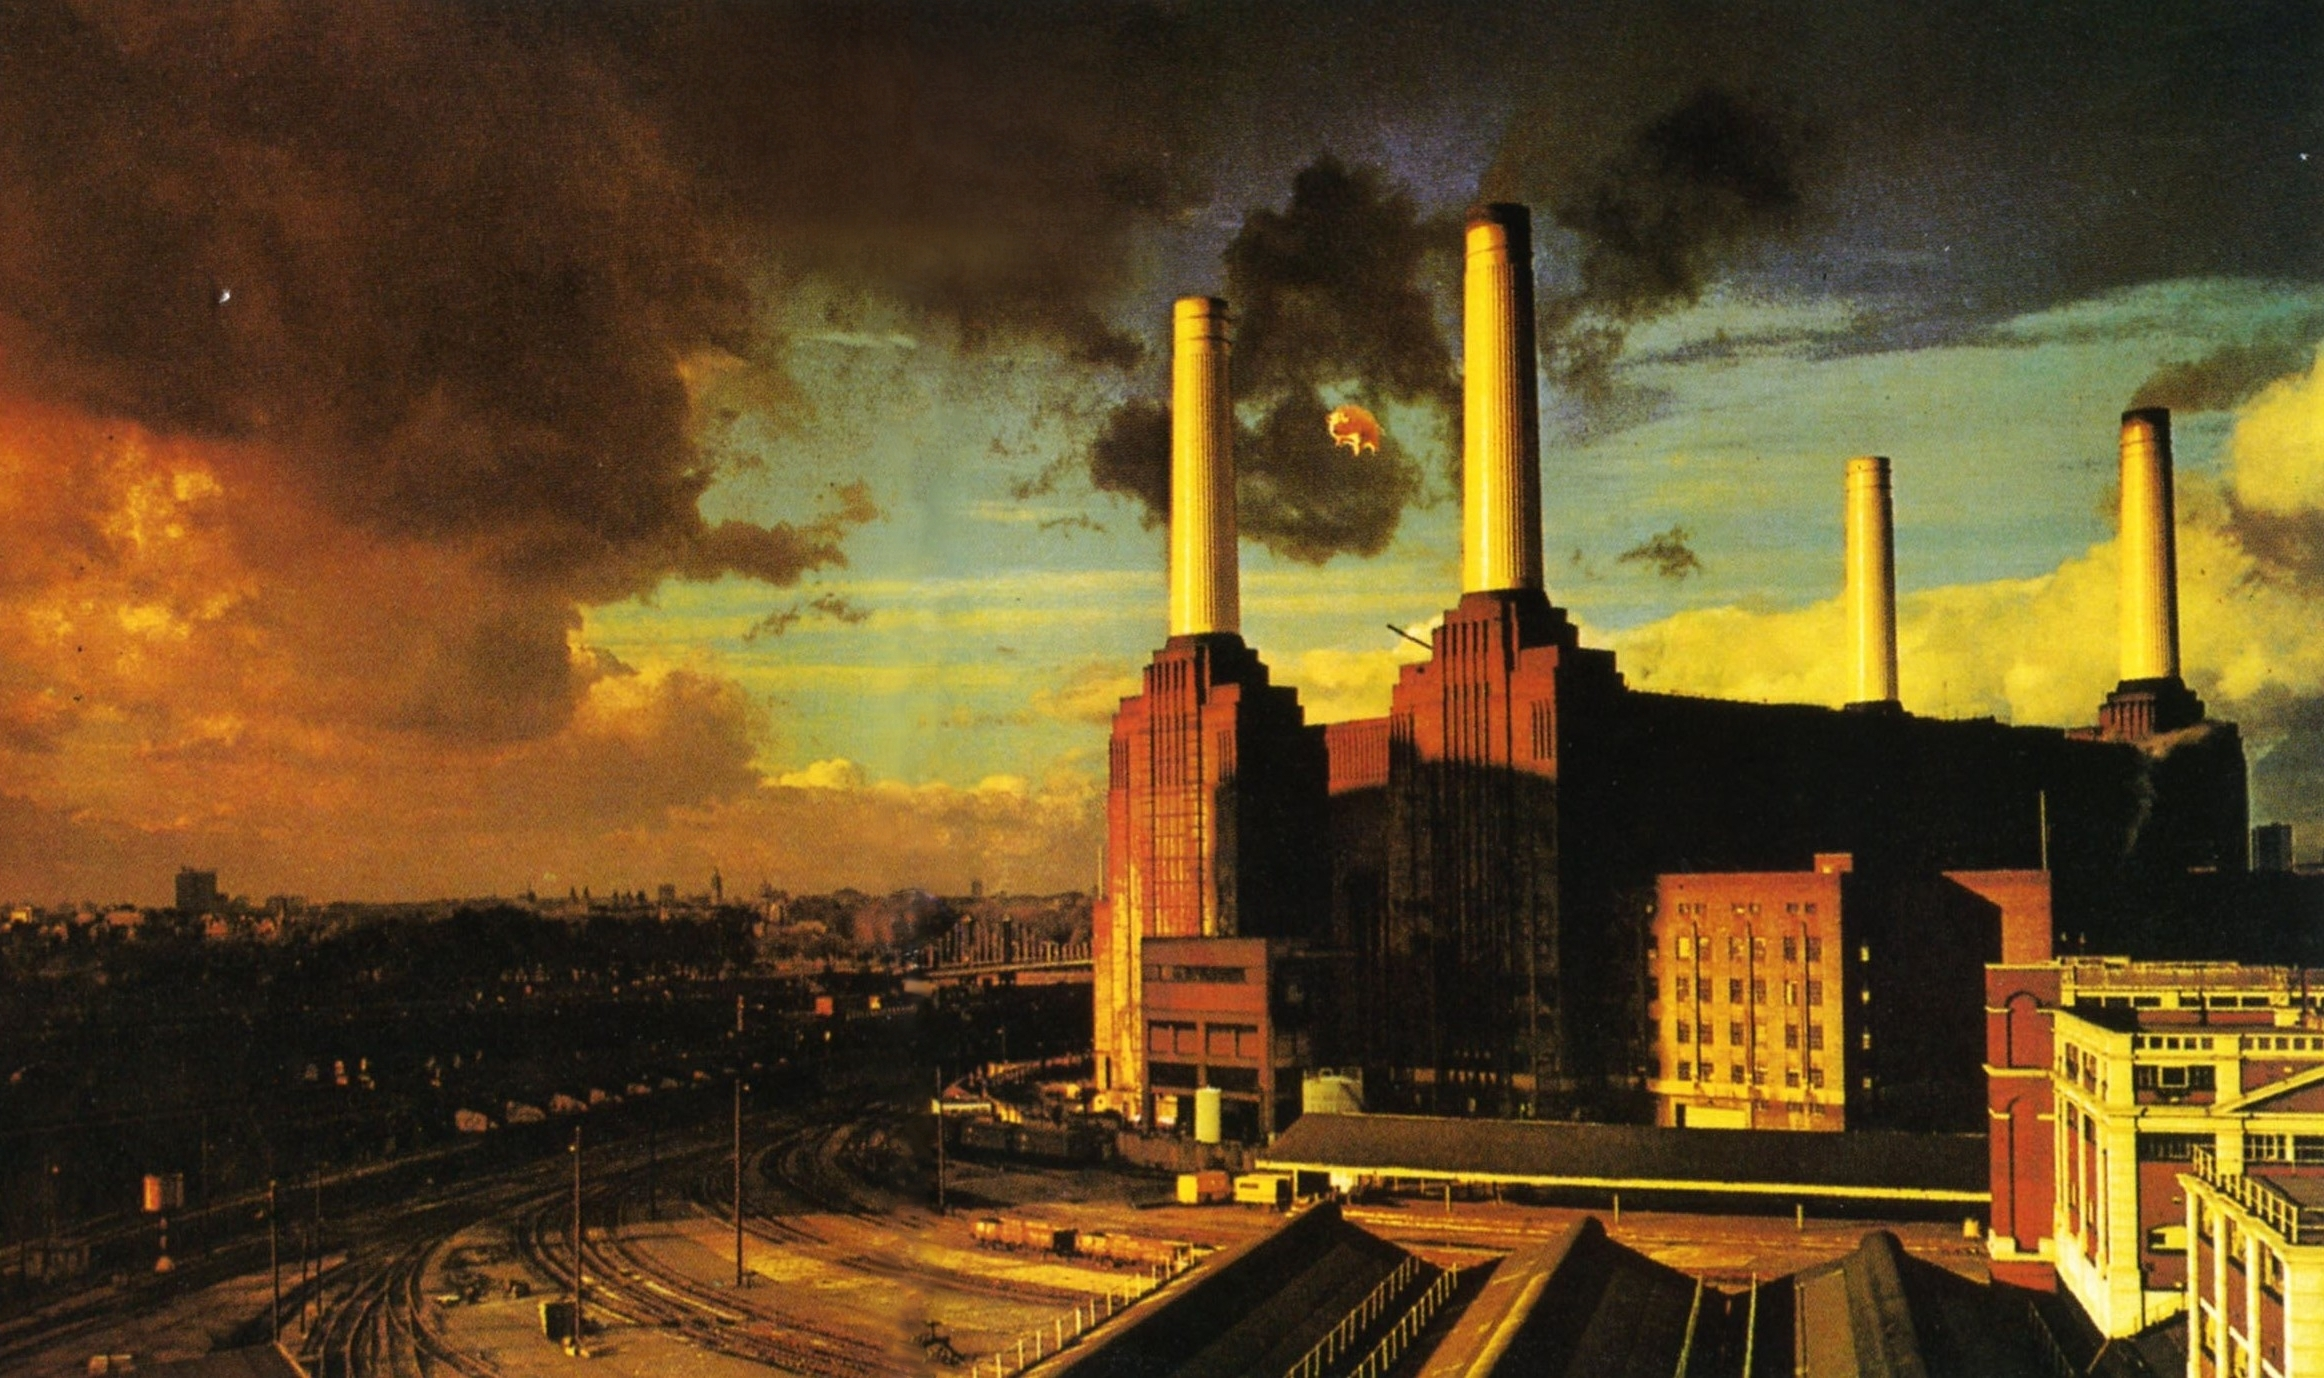 pink floyd theme pollution factory desktop wallpaper